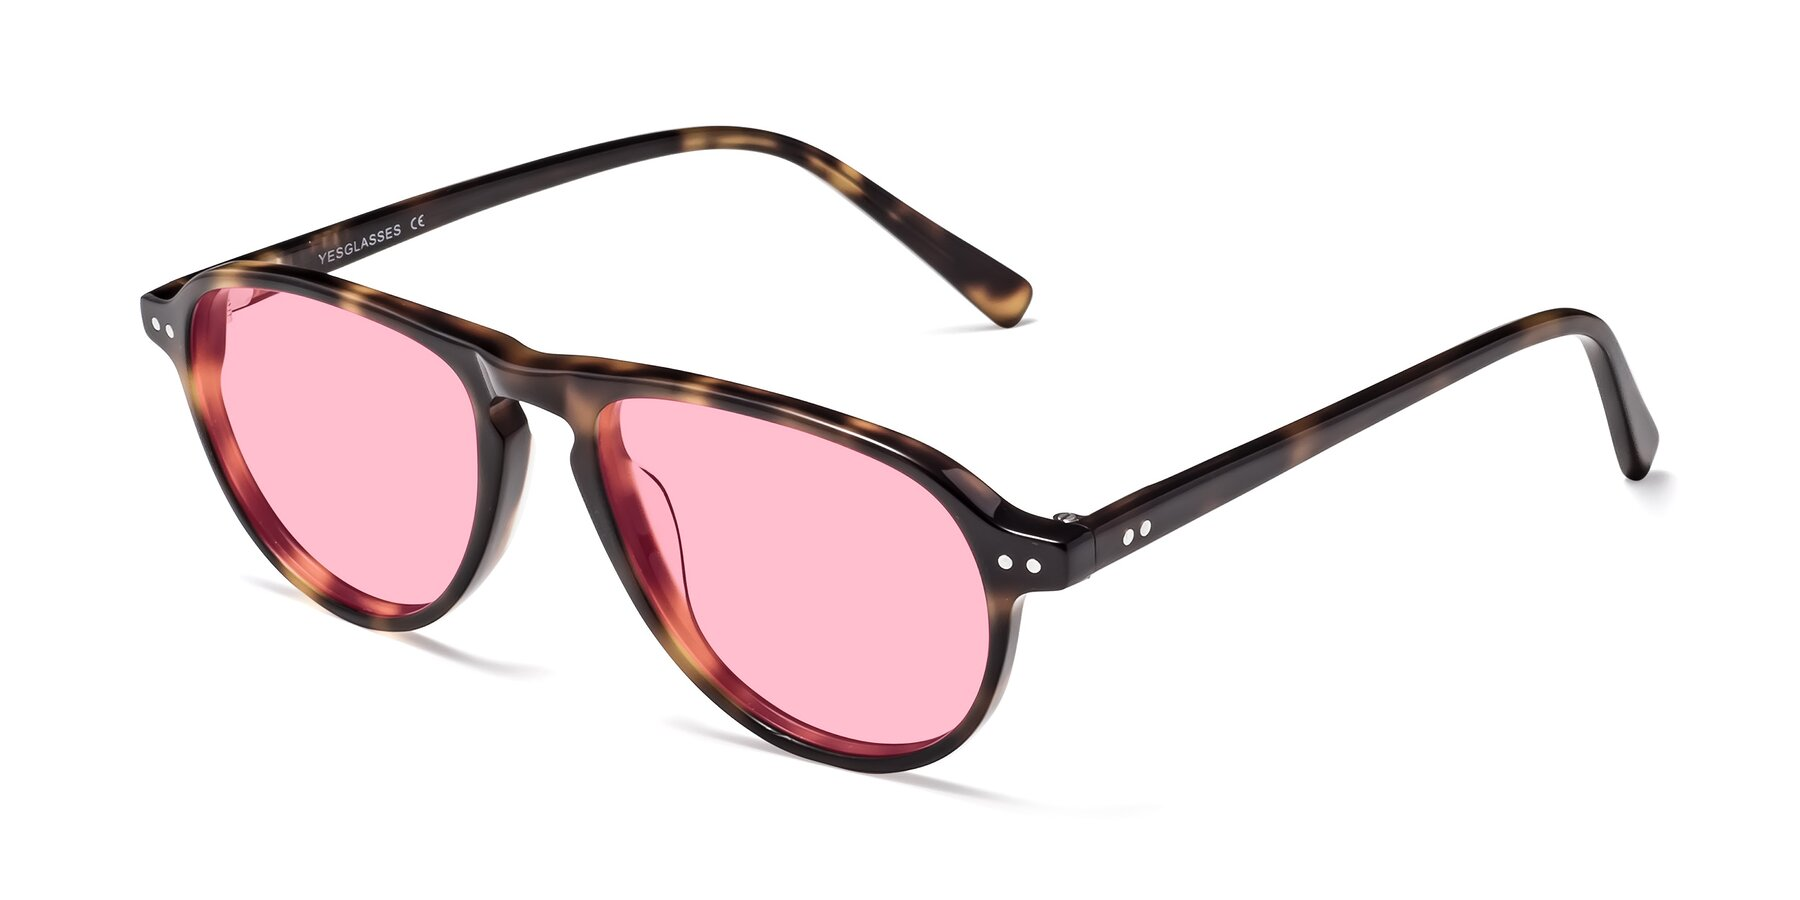 Angle of 17544 in Tortoise with Medium Pink Tinted Lenses